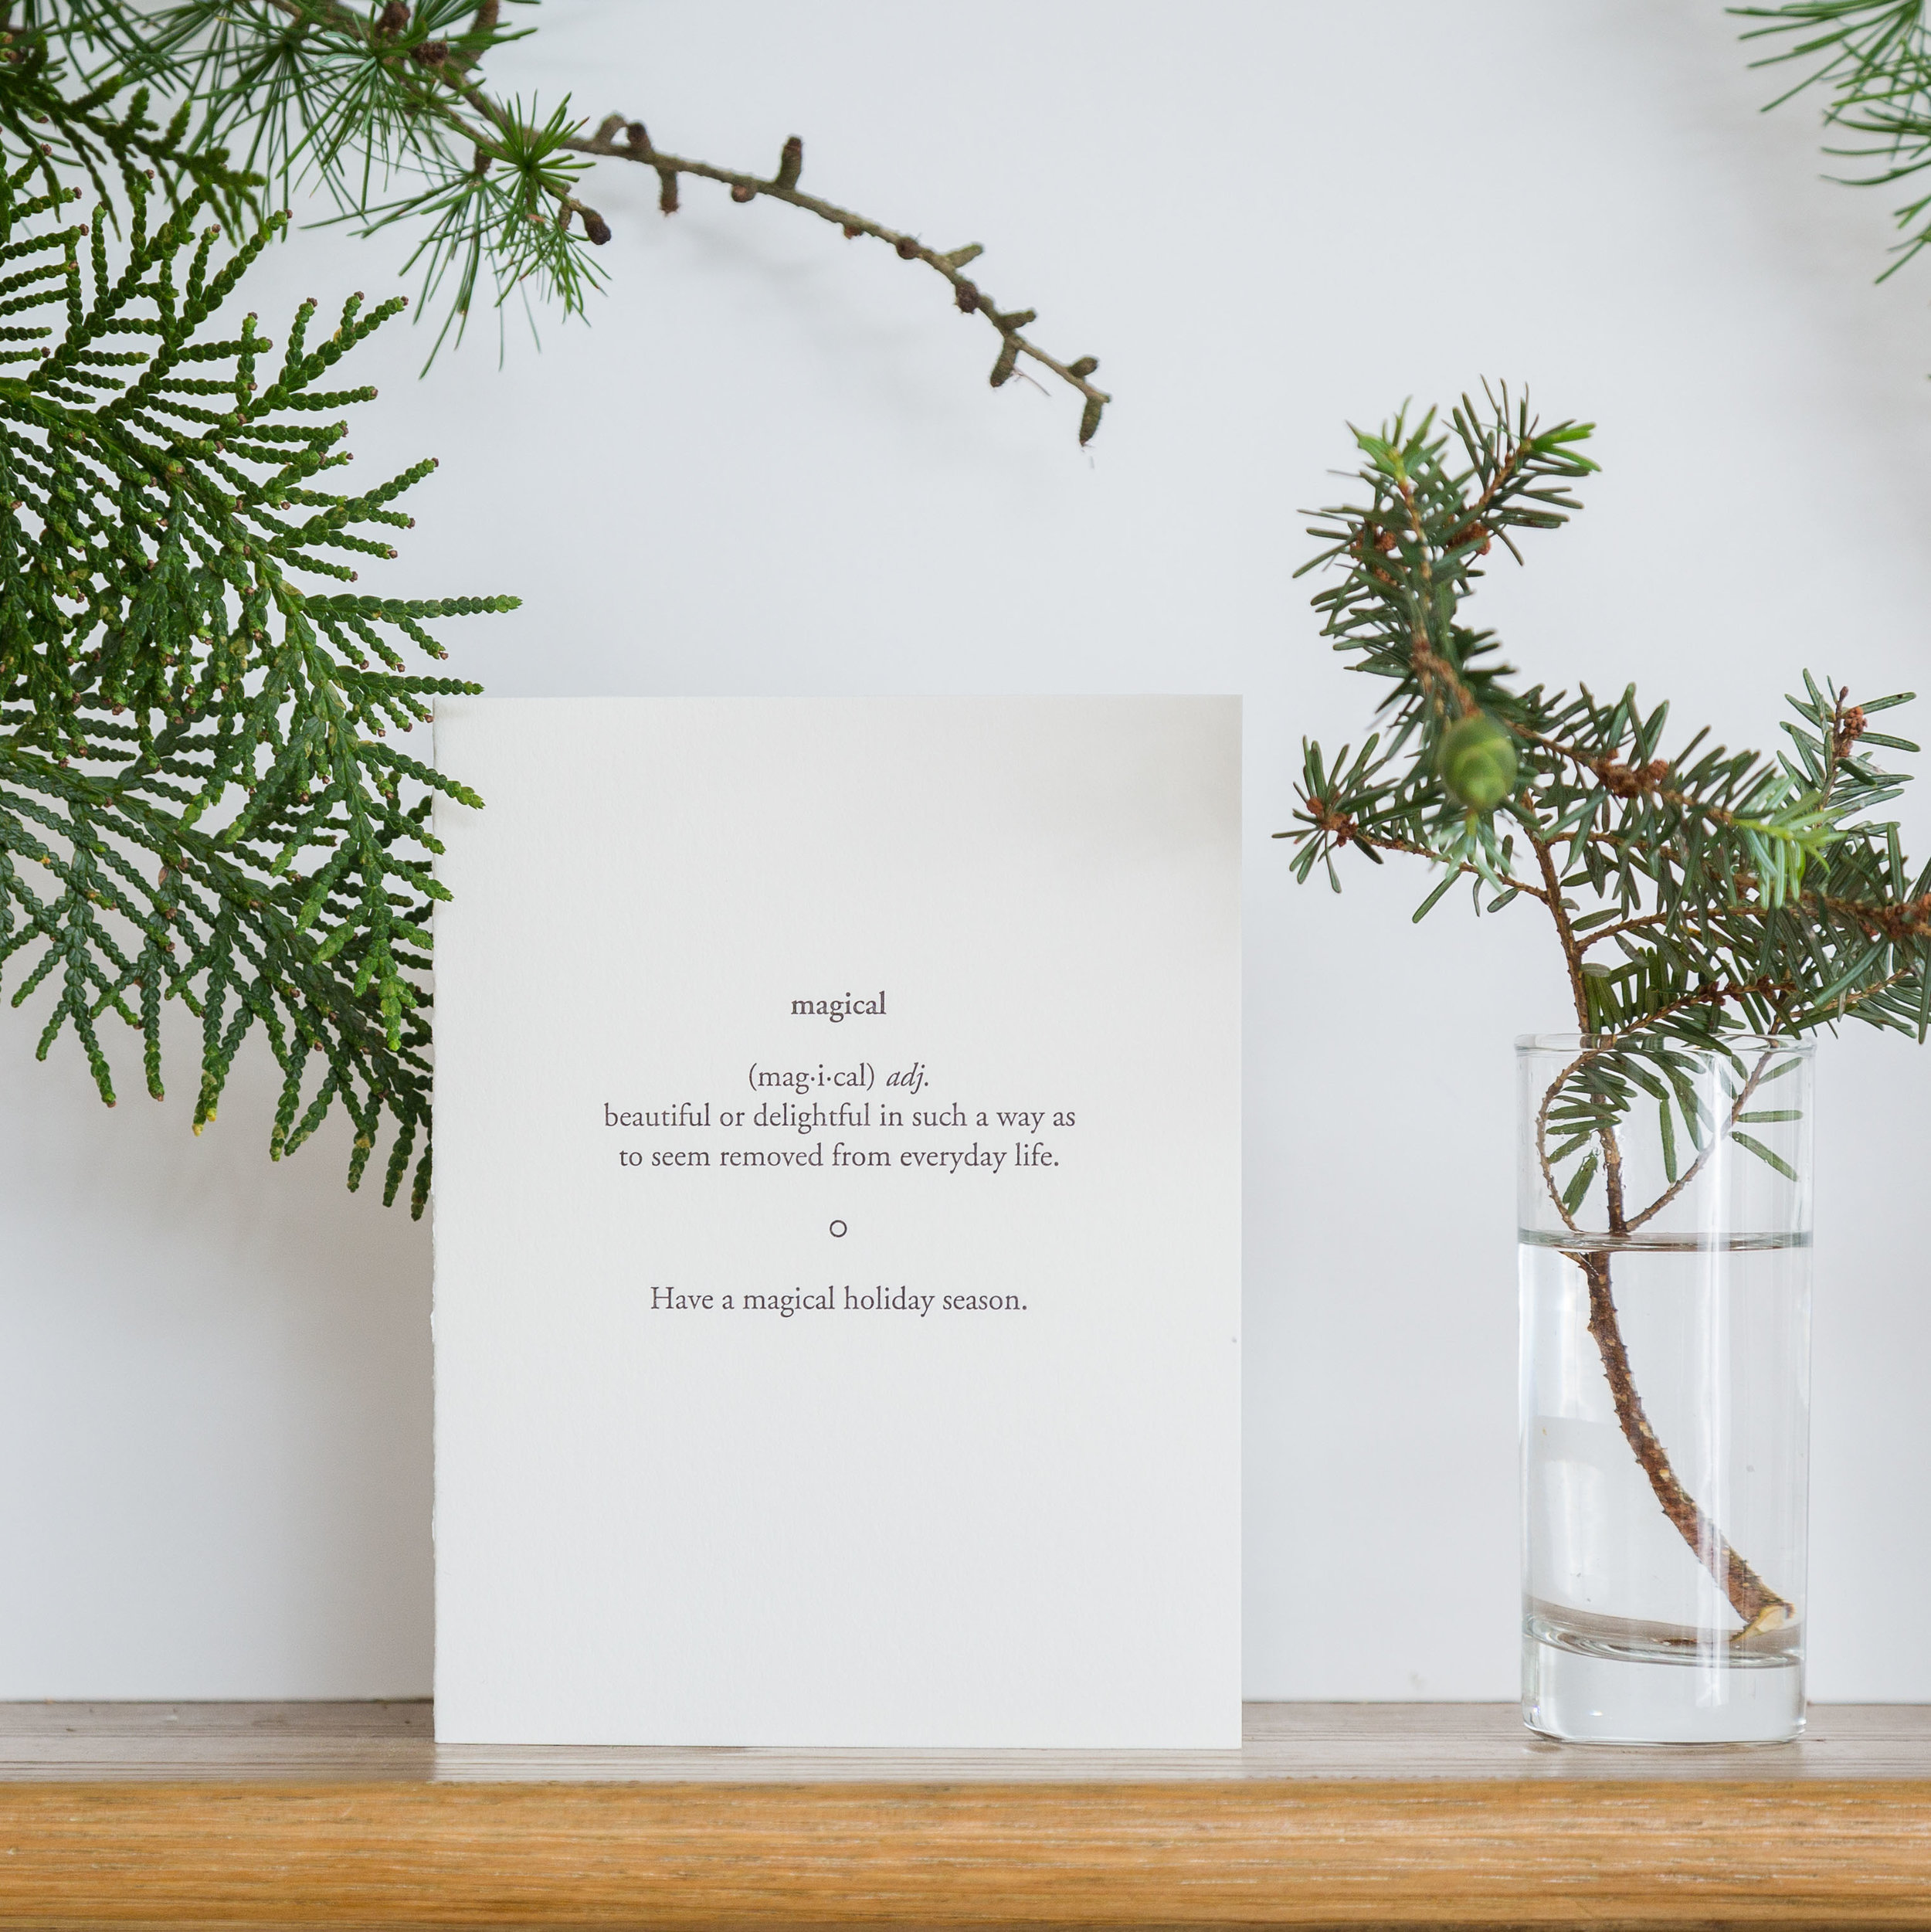 The holidays are a little bit of magic aren't they? Send your wishes for a beautiful and delightful holiday season with this simple yet meaningful letterpress card.